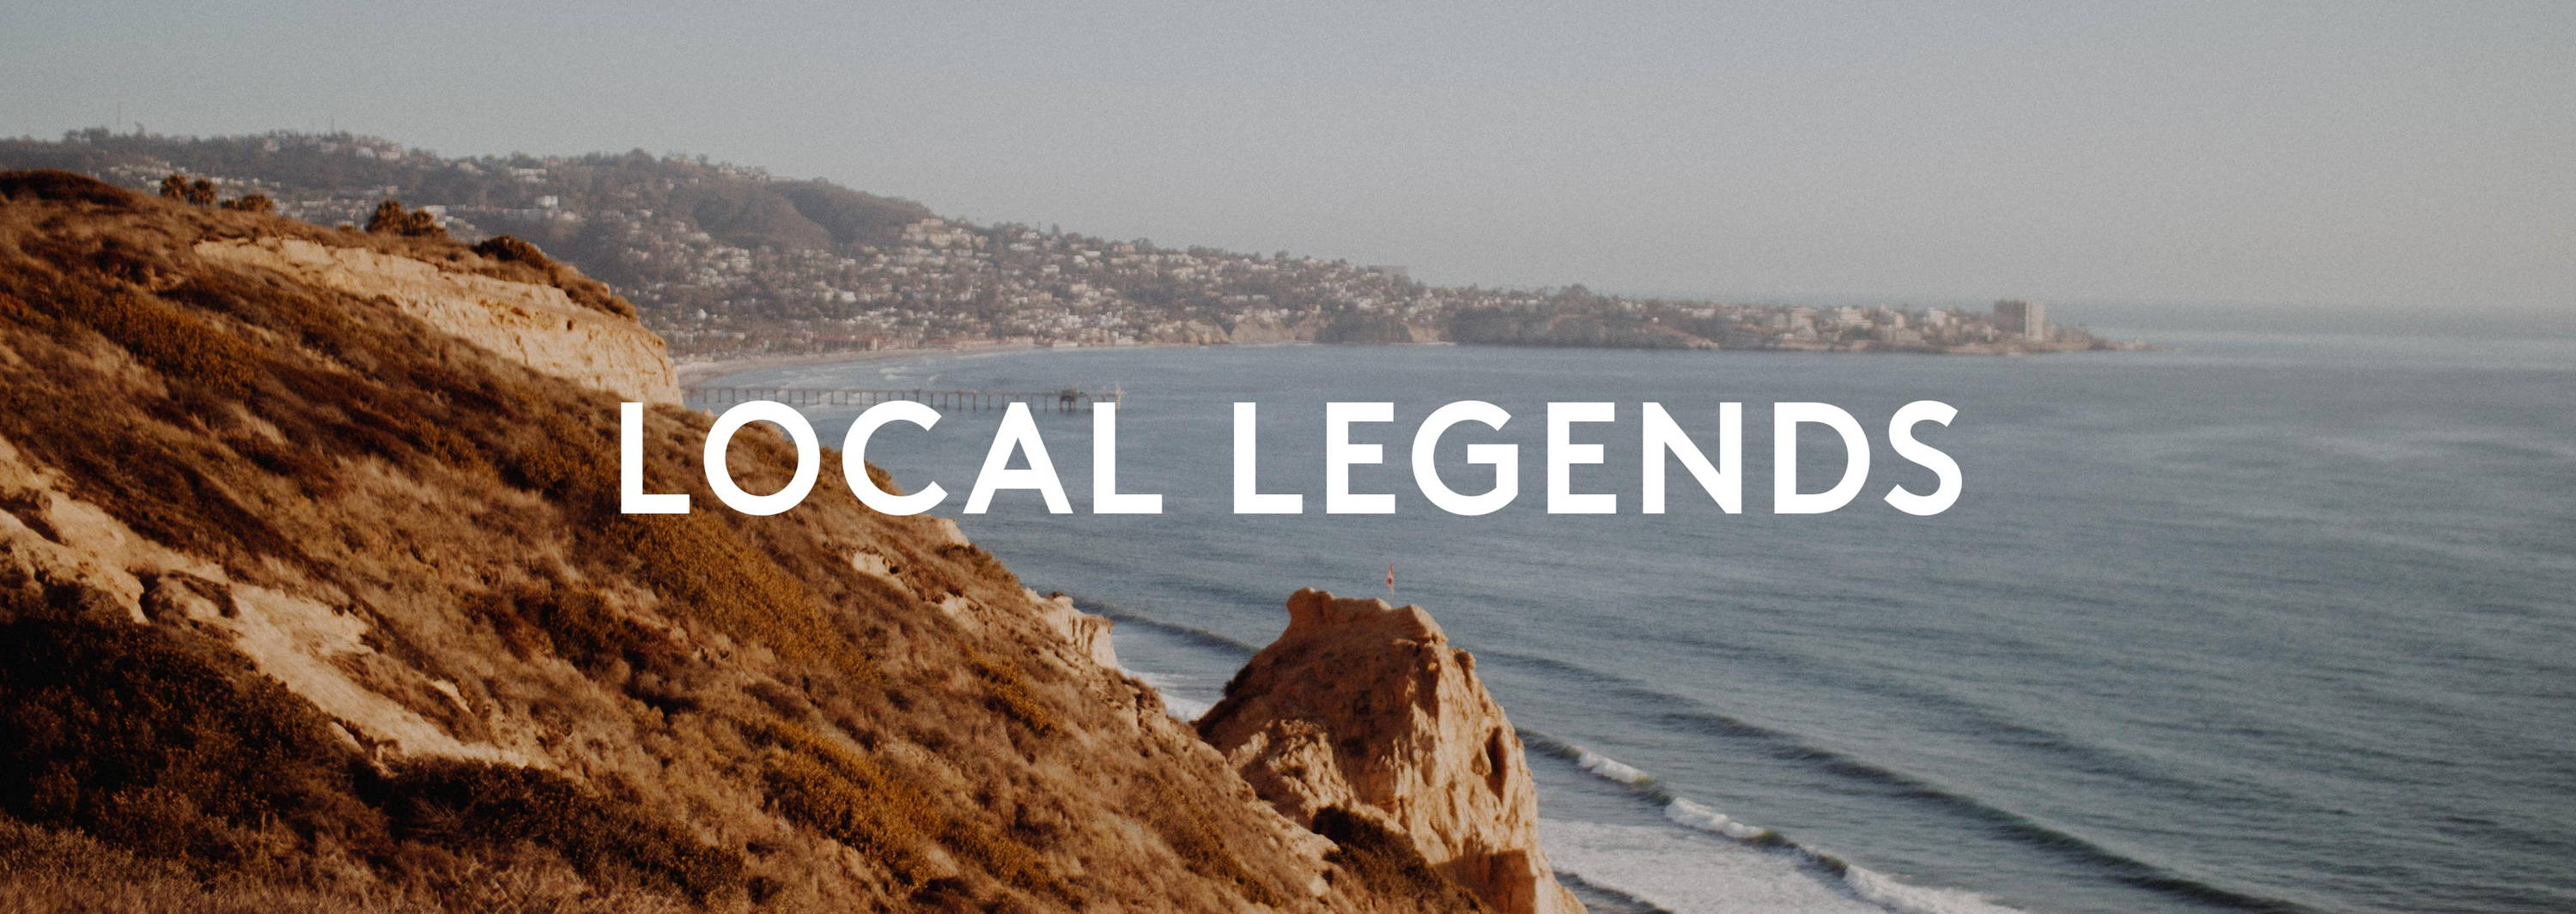 Local Legends of La Jolla